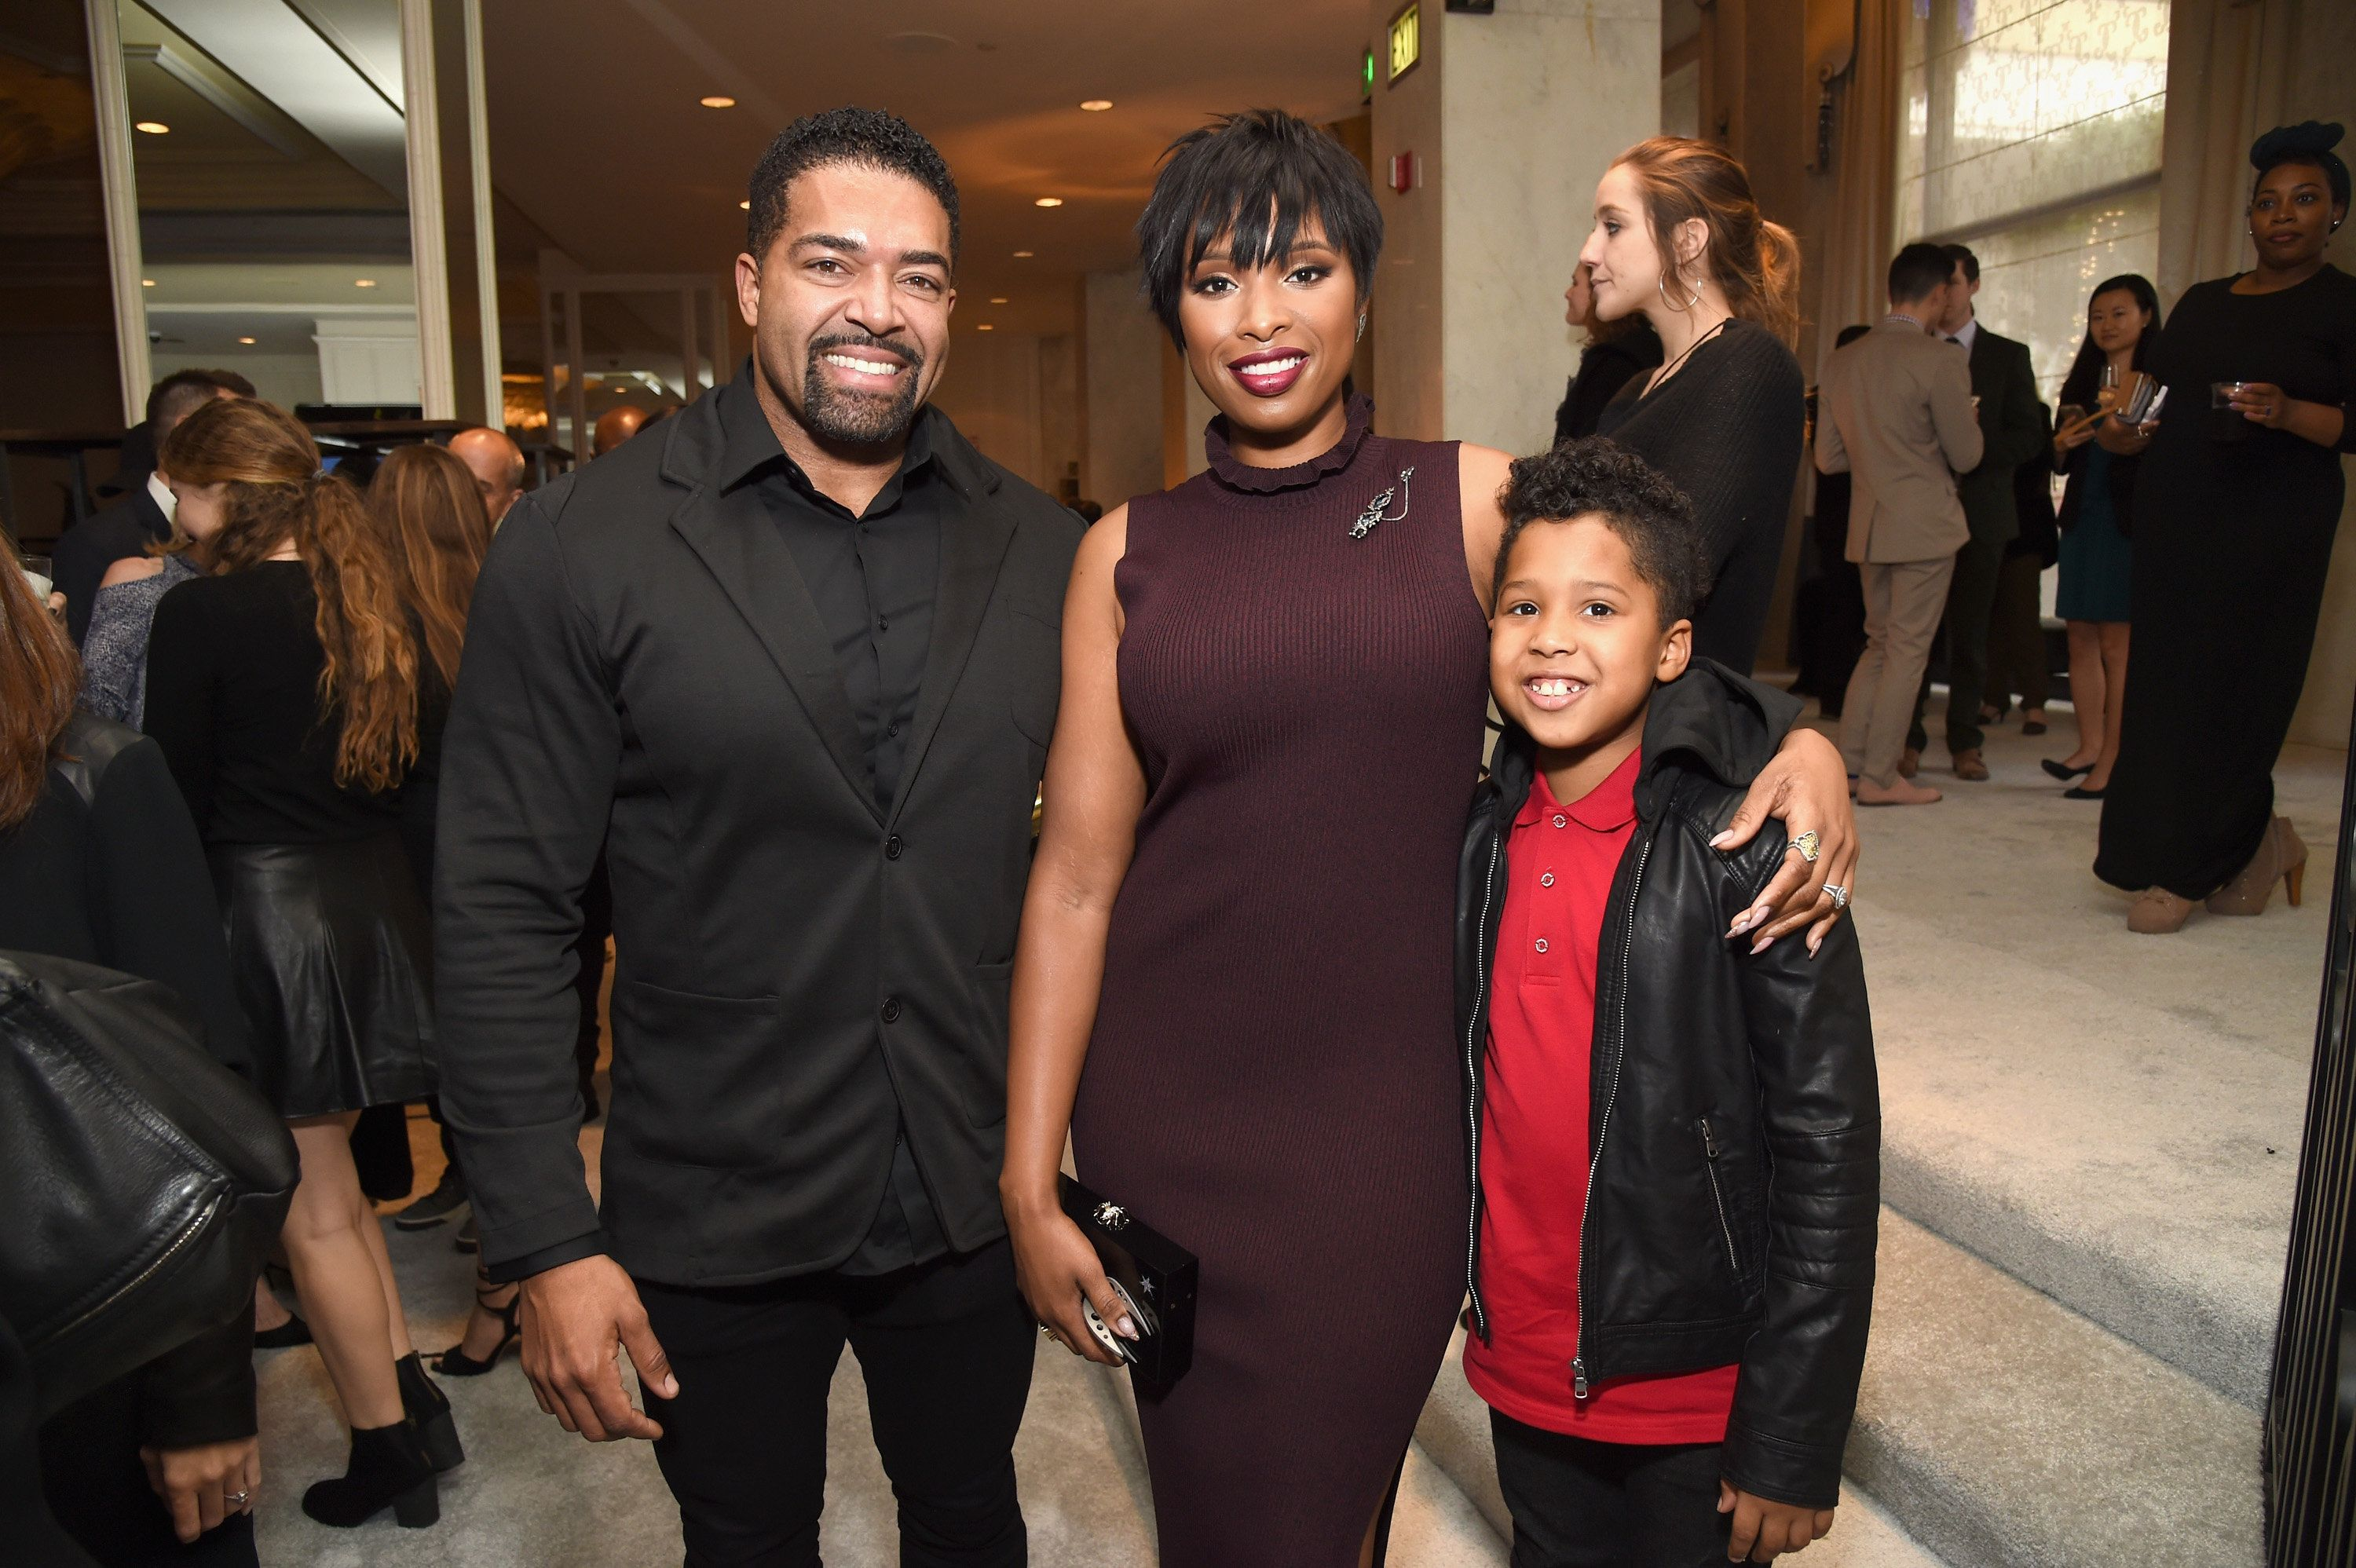 BEVERLY HILLS, CA - DECEMBER 09:  (L-R) Wrestler David Otunga, honoree Jennifer Hudson and David Otunga Jr. attend 2016 March of Dimes Celebration of Babies at the Beverly Wilshire Four Seasons Hotel on December 9, 2016 in Beverly Hills, California.  (Photo by Michael Kovac/Getty Images for March of Dimes )